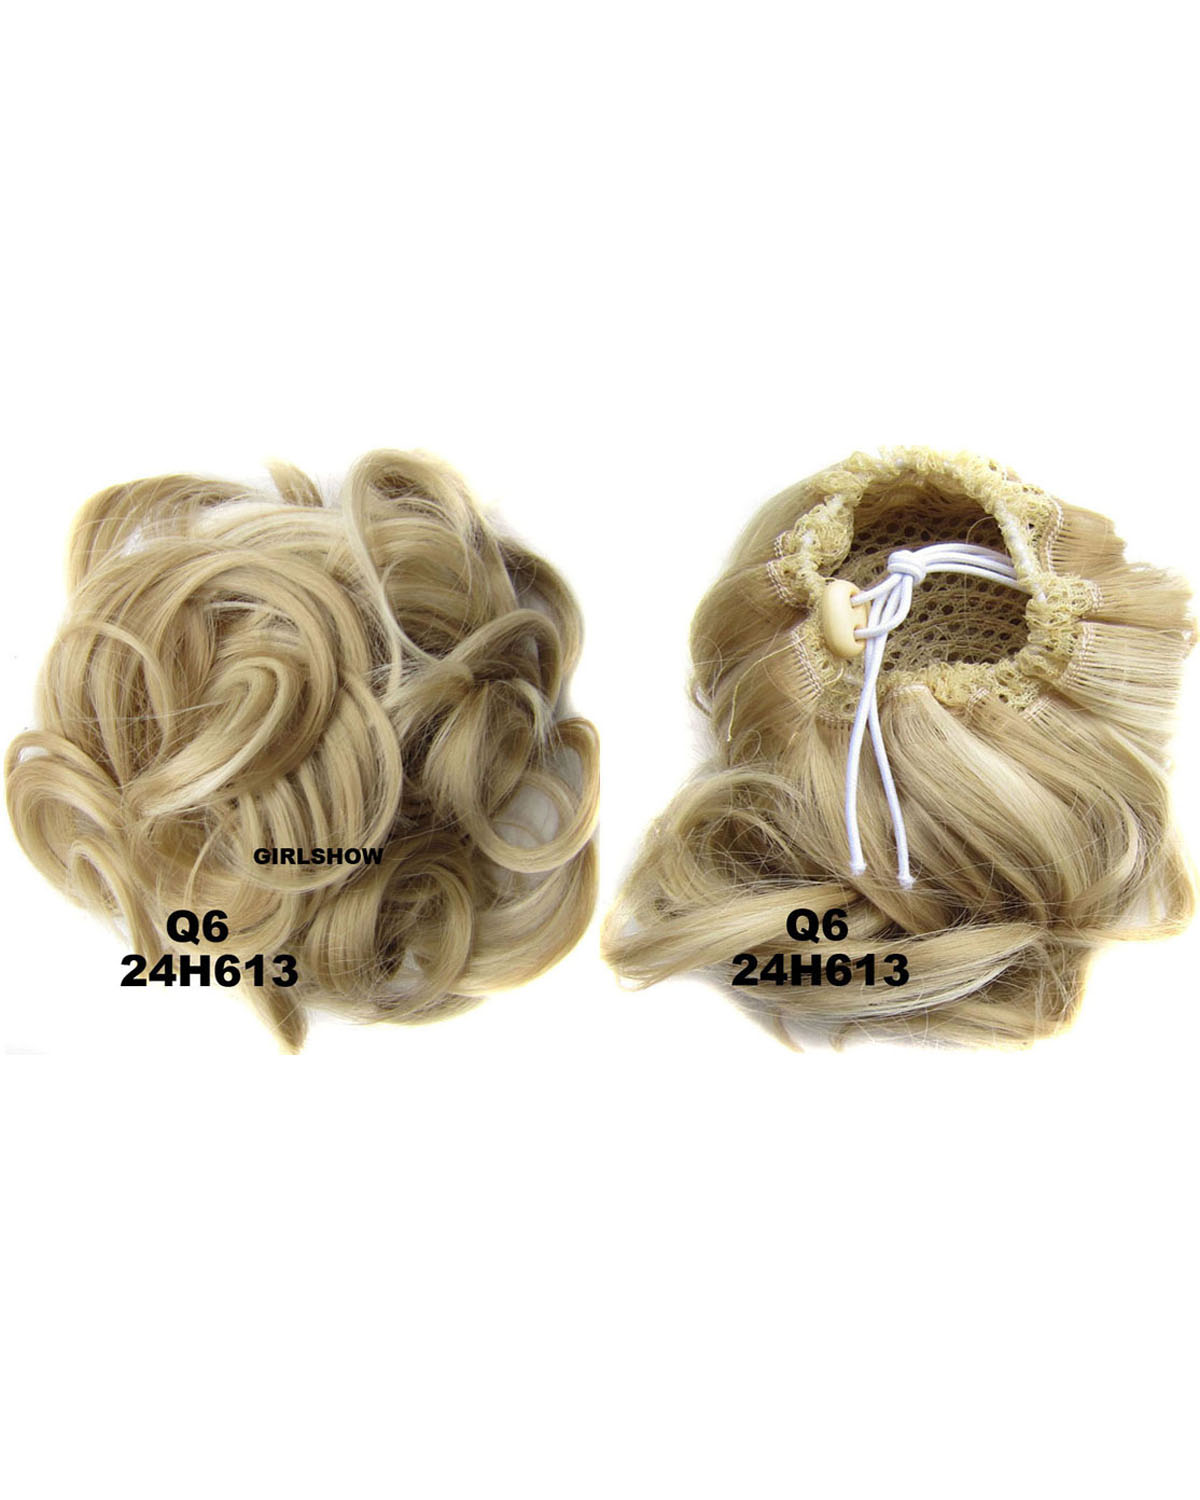 Ladies Newly  Elaborate Curly and Short Hair Buns Drawstring Synthetic Hair Extension Bride Scrunchies 24H613